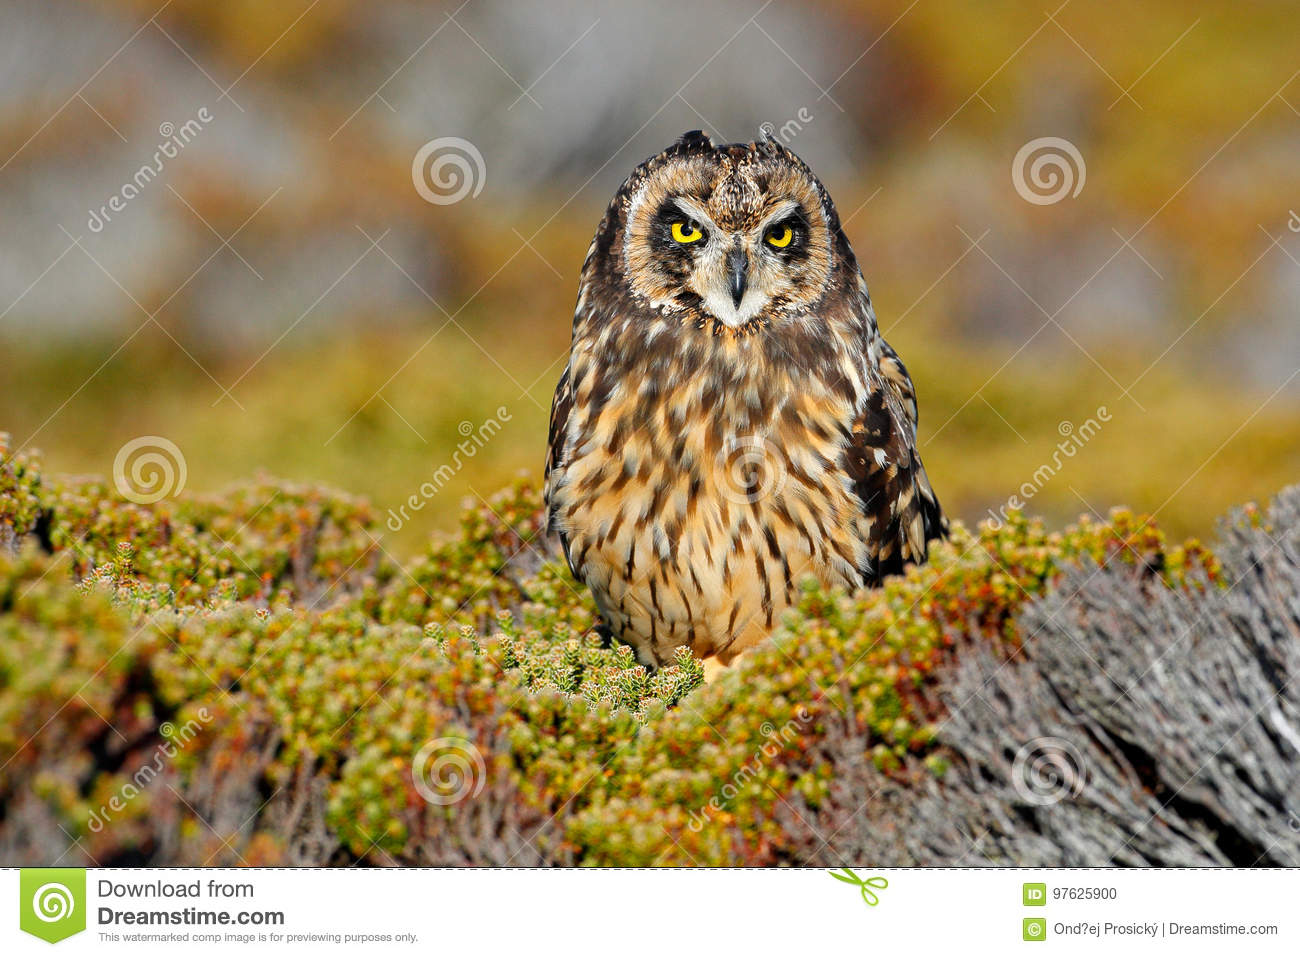 Short-eared Owl, Asio flammeus sanfordi, rare endemic bird from Sea Lion Island, Fakland Islands, Owl in the nature habitat. Bird